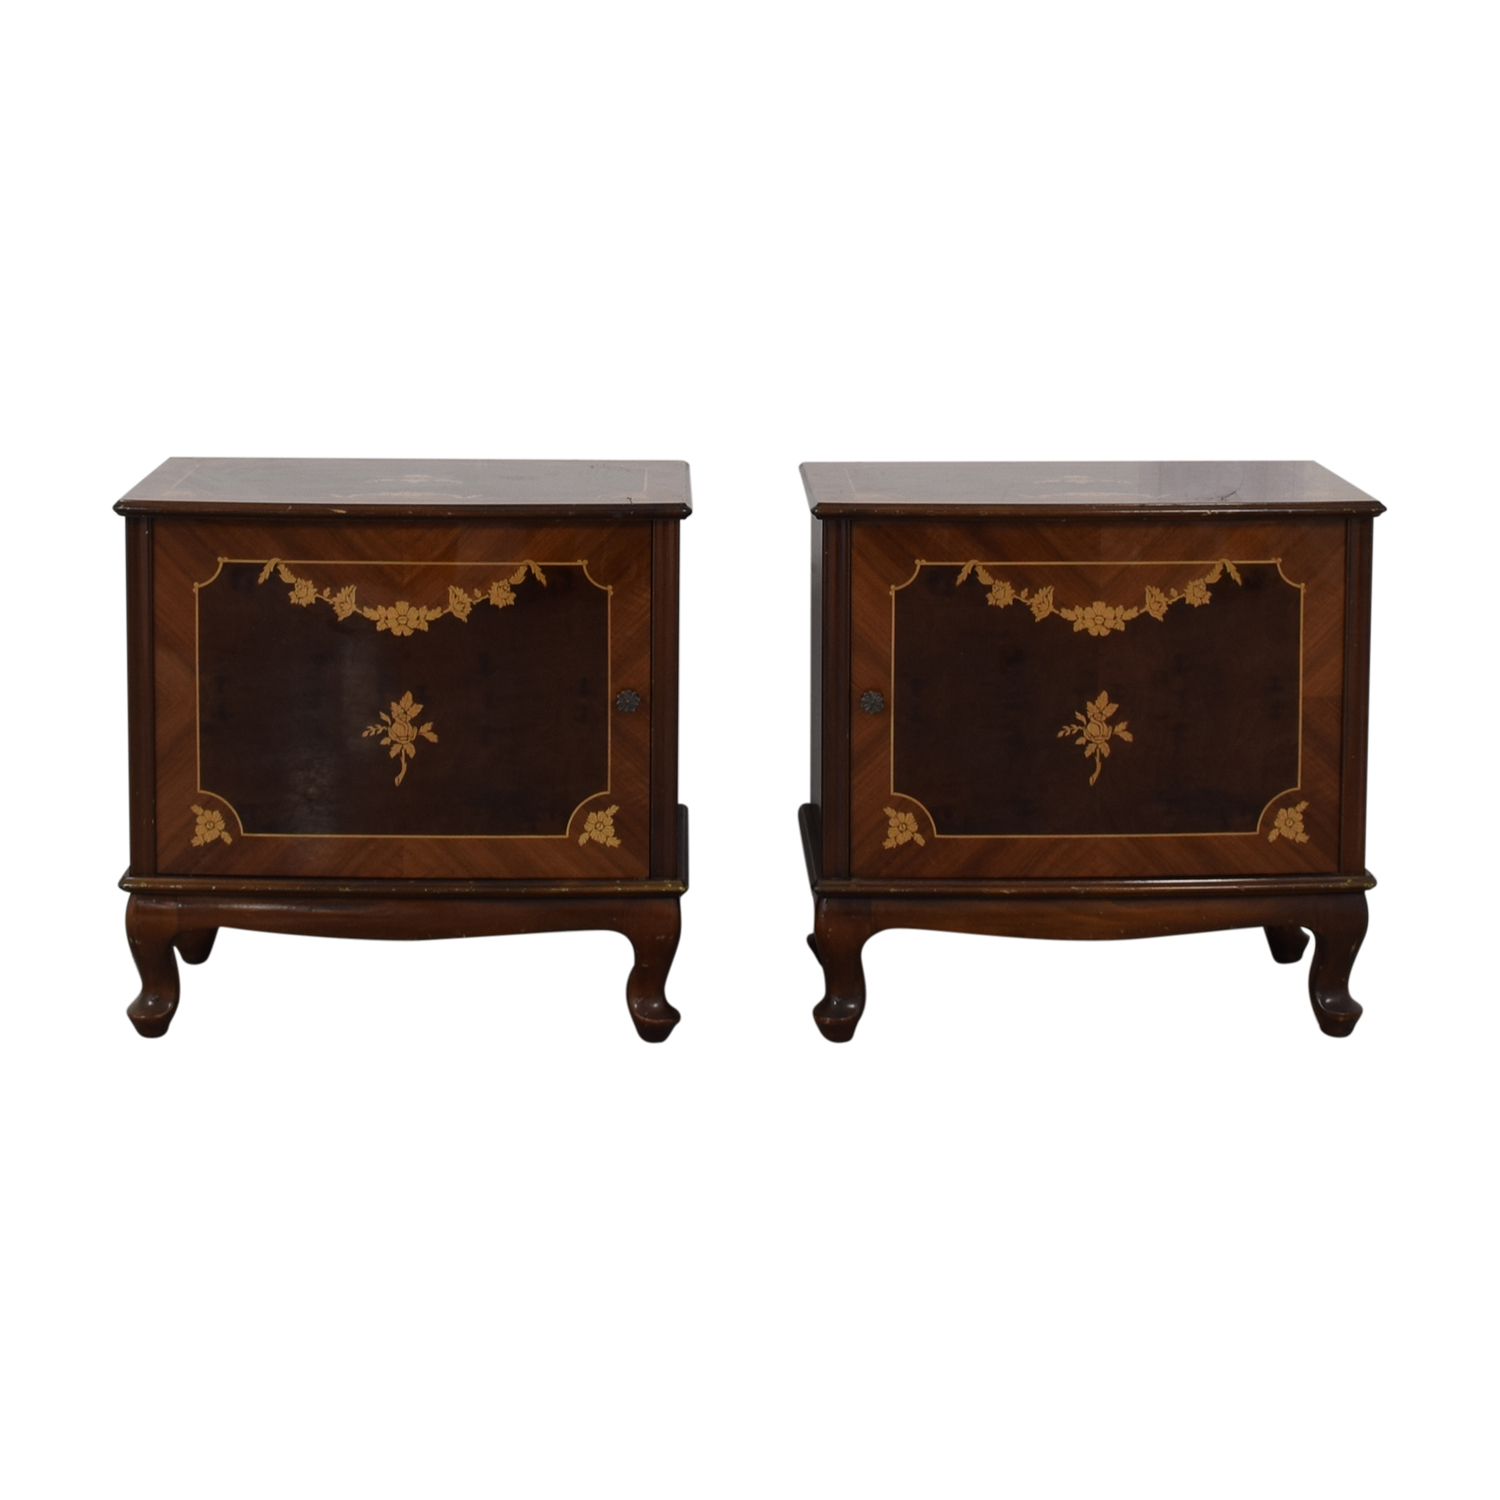 Roma Furniture Roma Furniture Wood Storage End Tables second hand